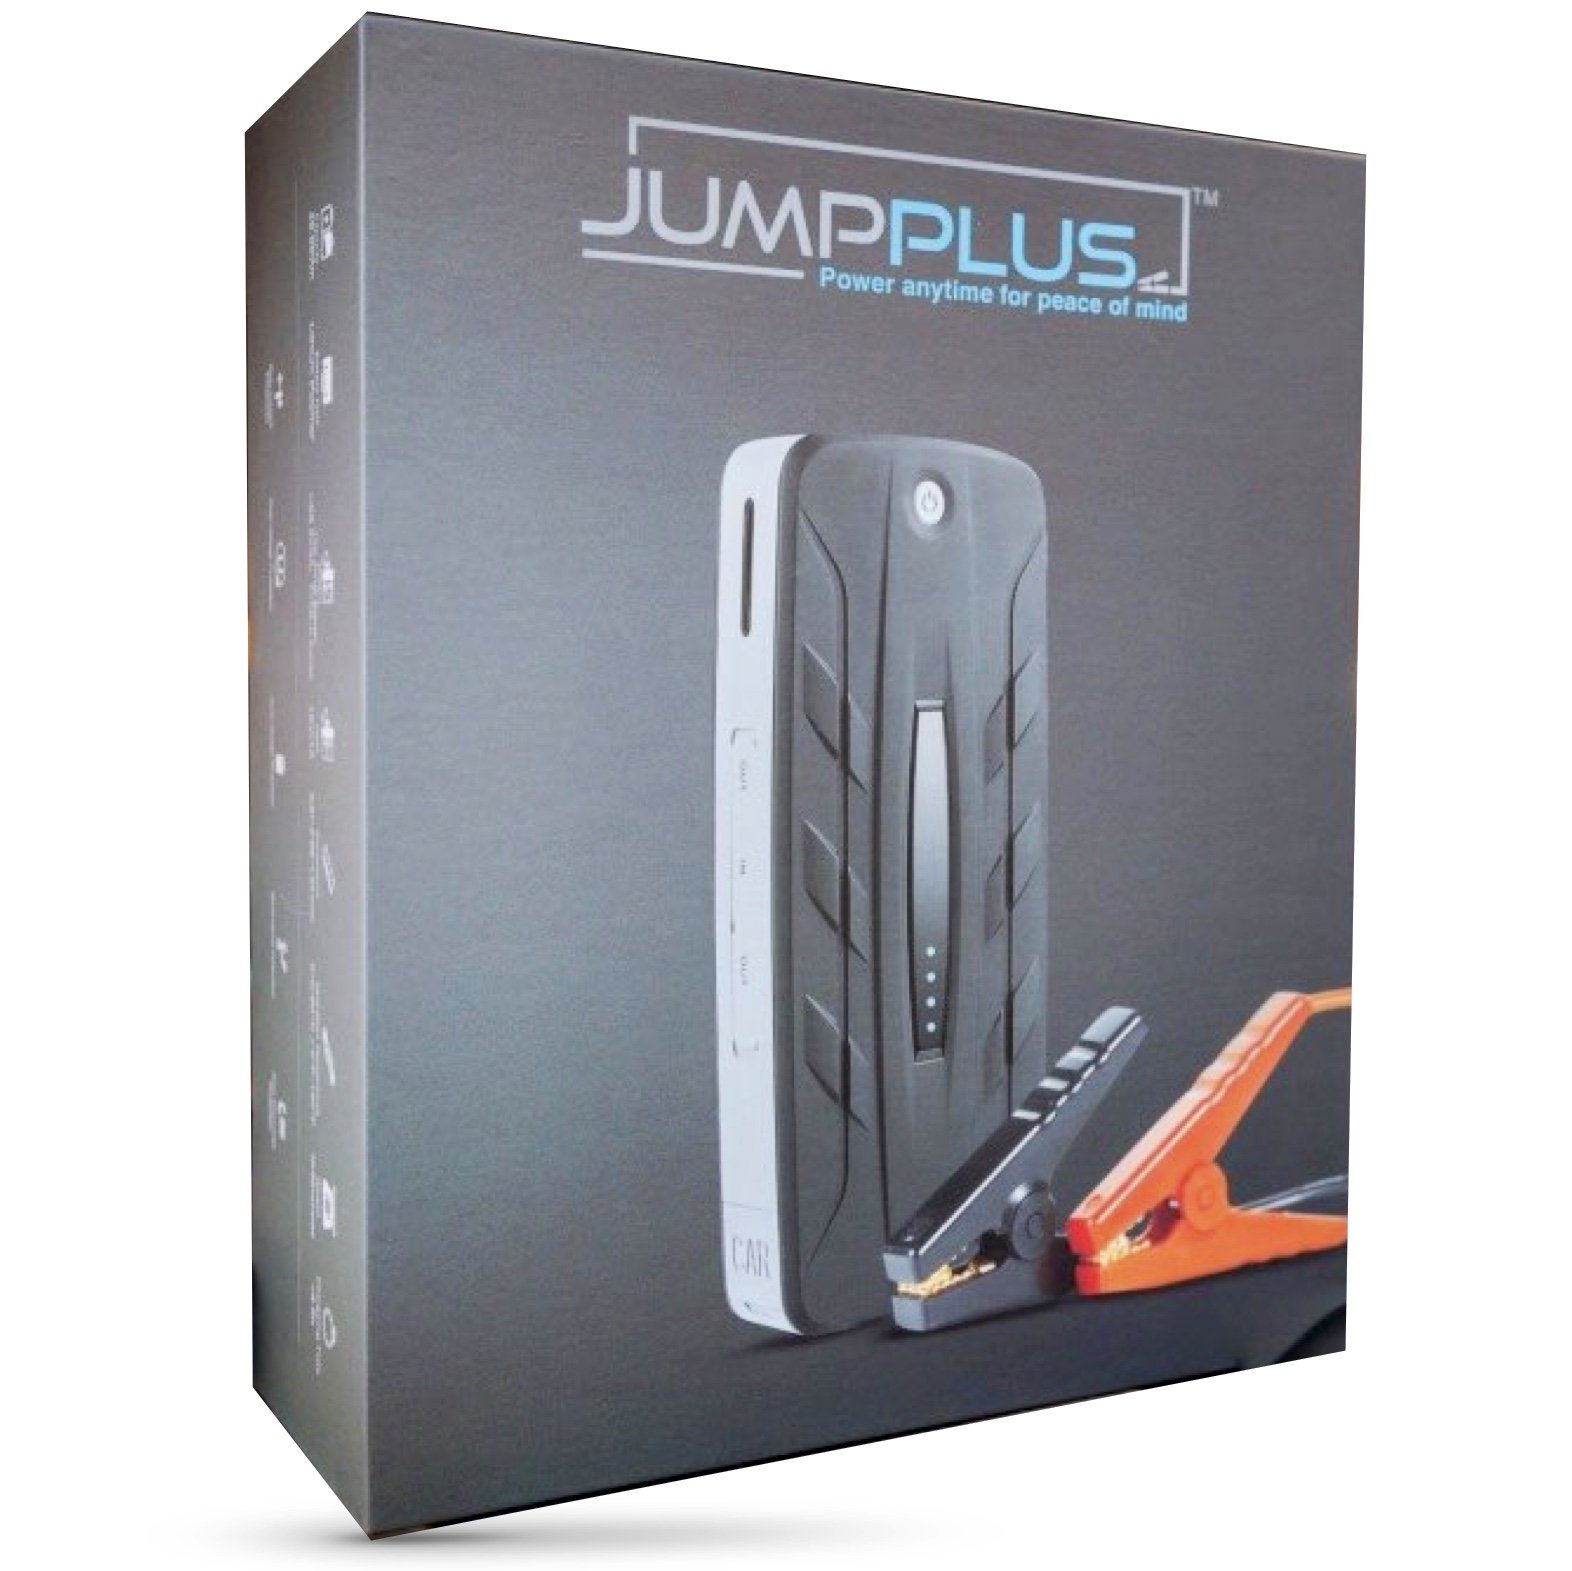 JUMPPLUS Portable Car Jump Starter & USB Charger | Macbook Type C Power Bank External Battery Pack | LED Light by Jumpplus (Image #1)